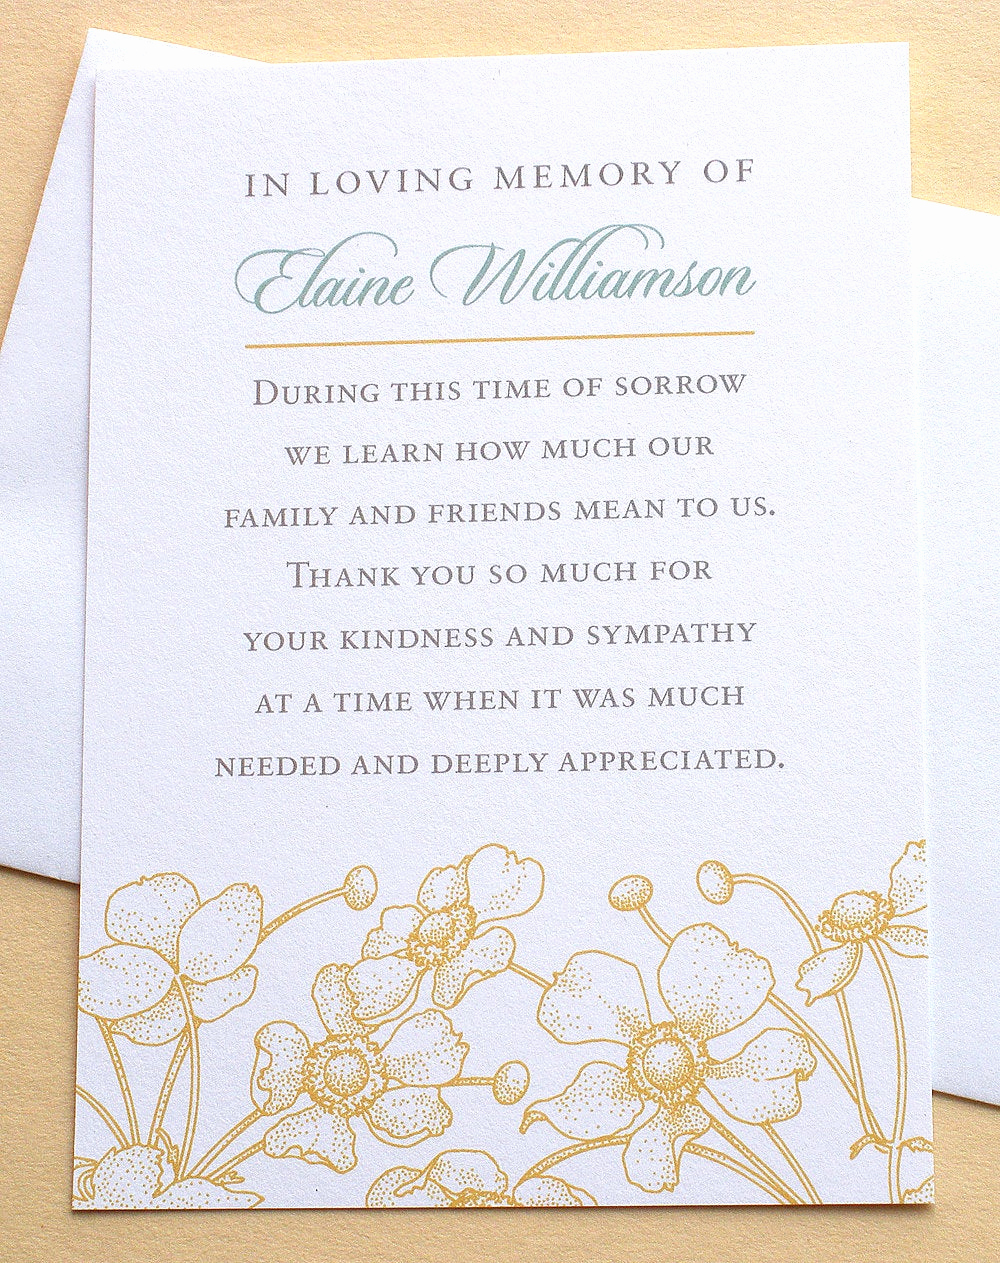 Bereavement Thank You Cards Awesome Sympathy Thank You Cards with Yellow Flowers Flat Cards